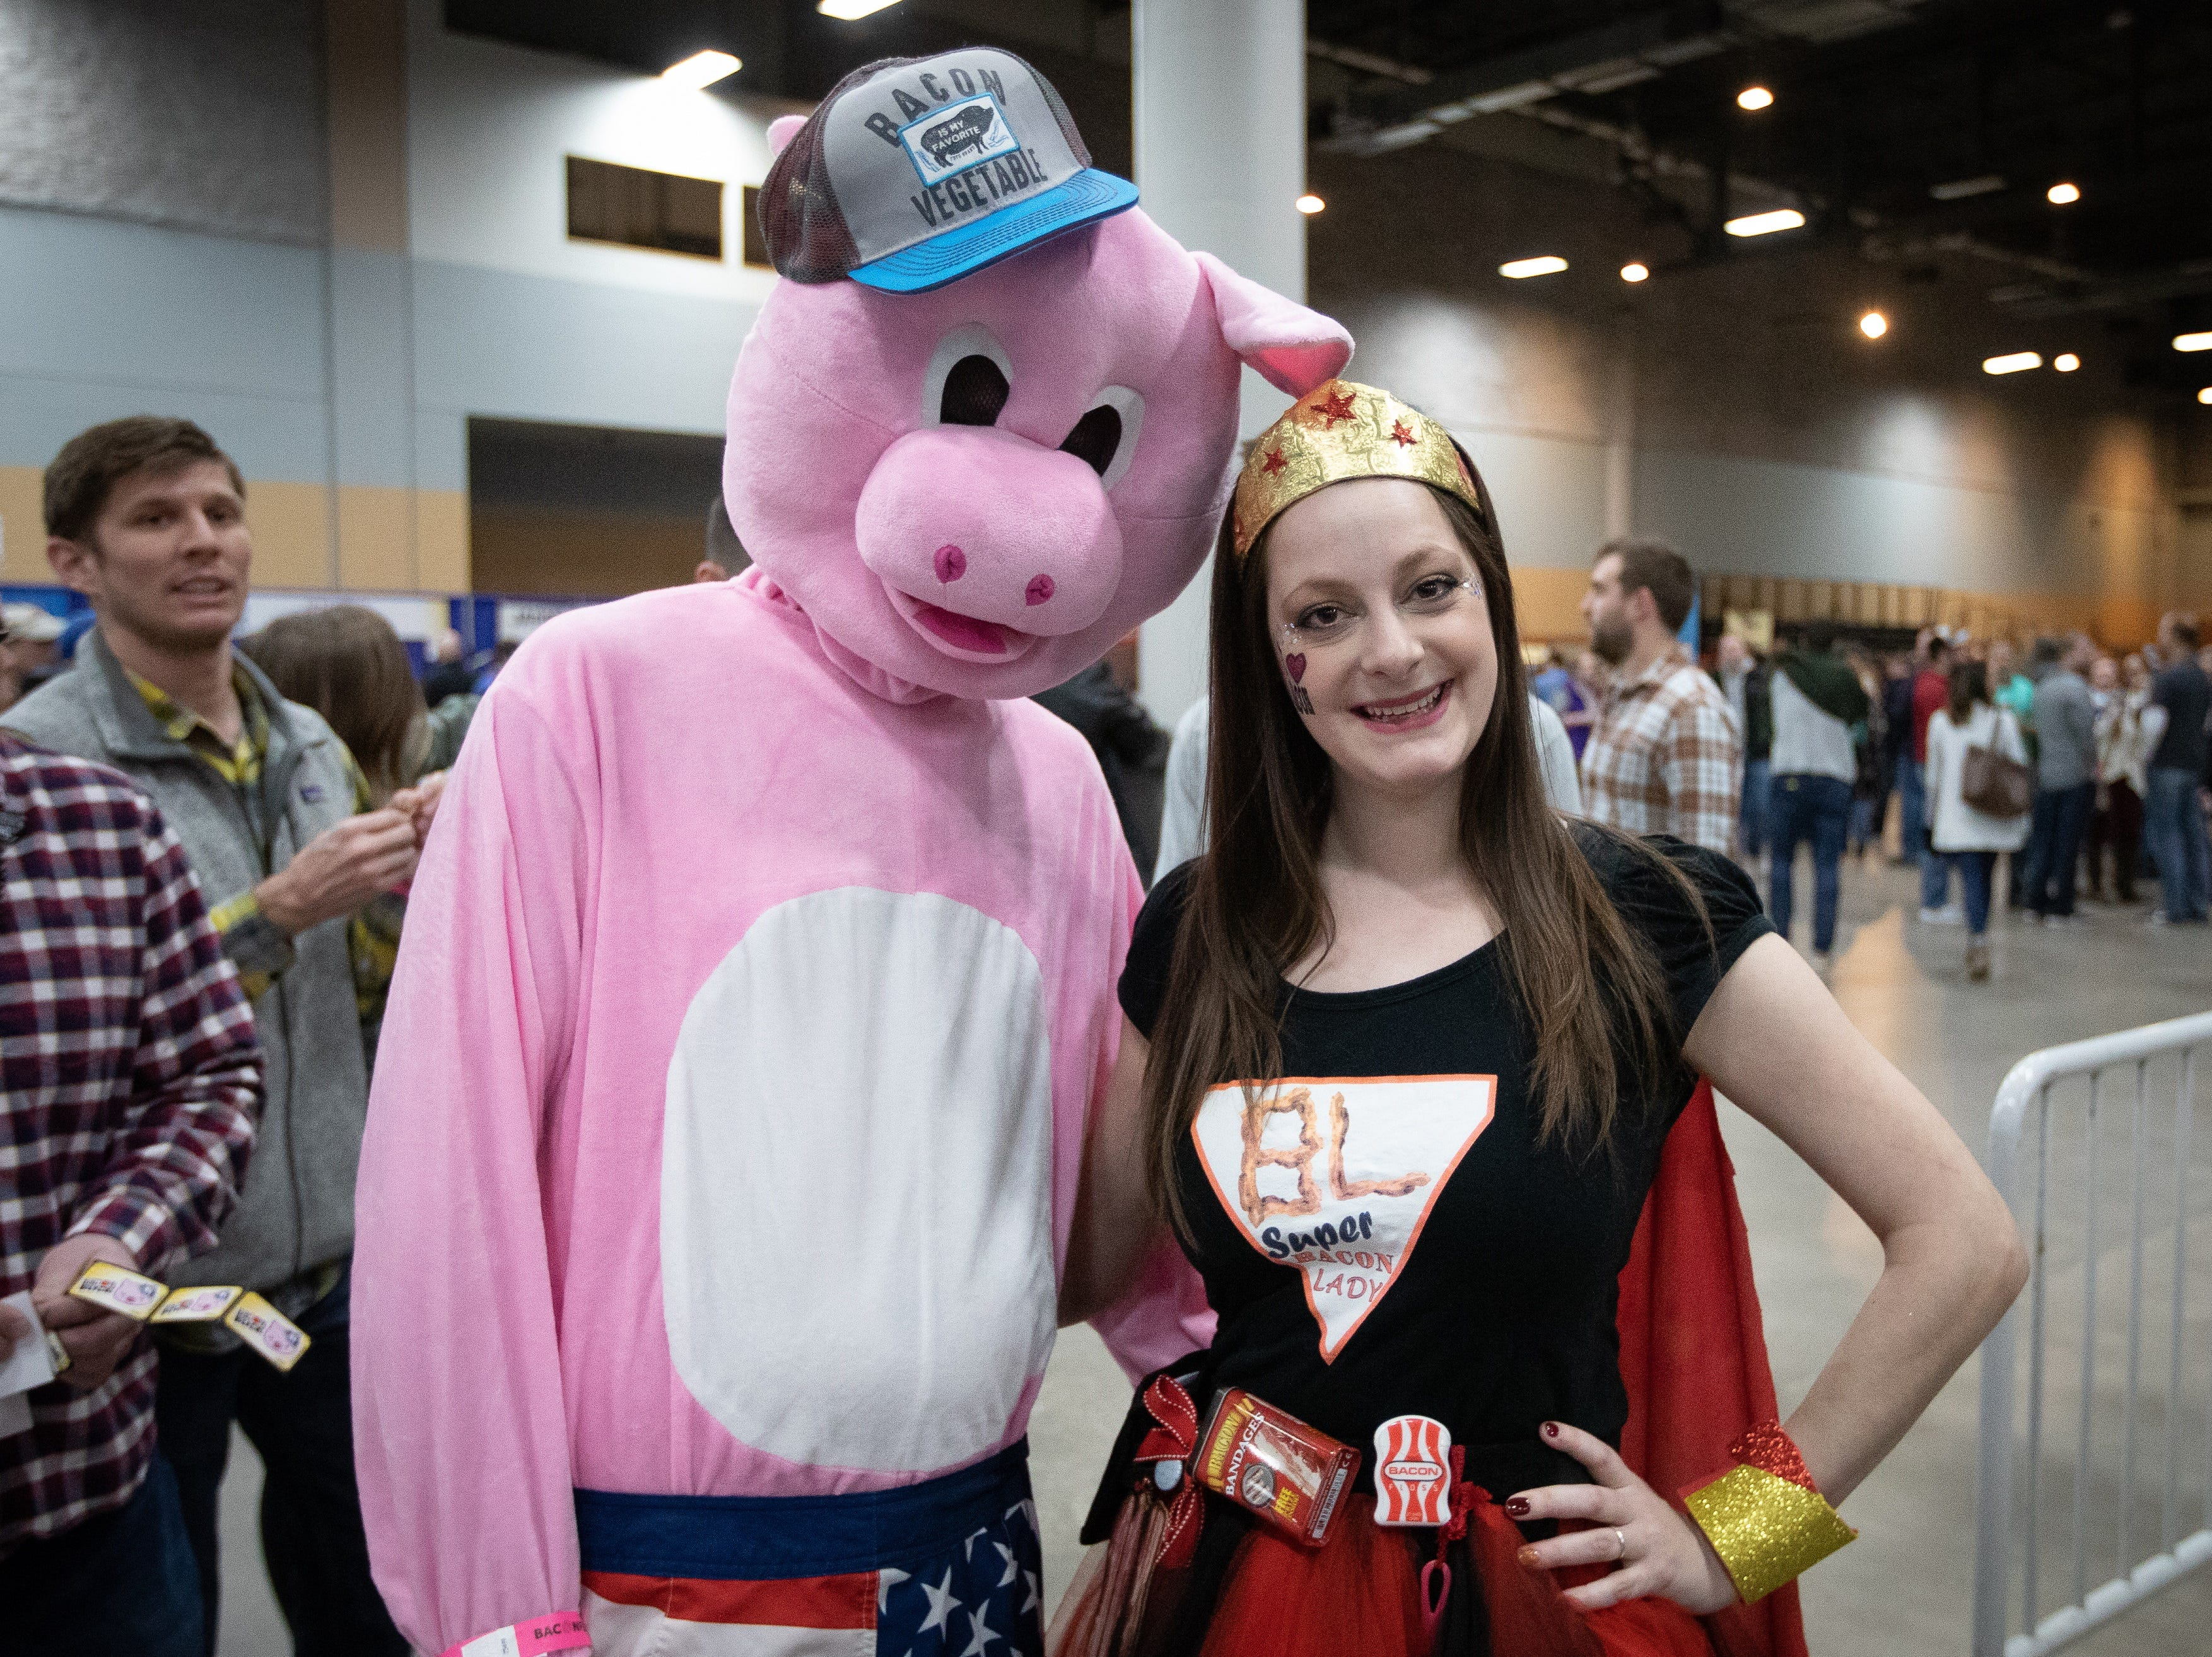 Super Bacon Lady and Side of Bacon pose for a photo during the Bacon Fest at Hy-Vee Hall on Feb. 16, 2019 in Des Moines, Iowa.